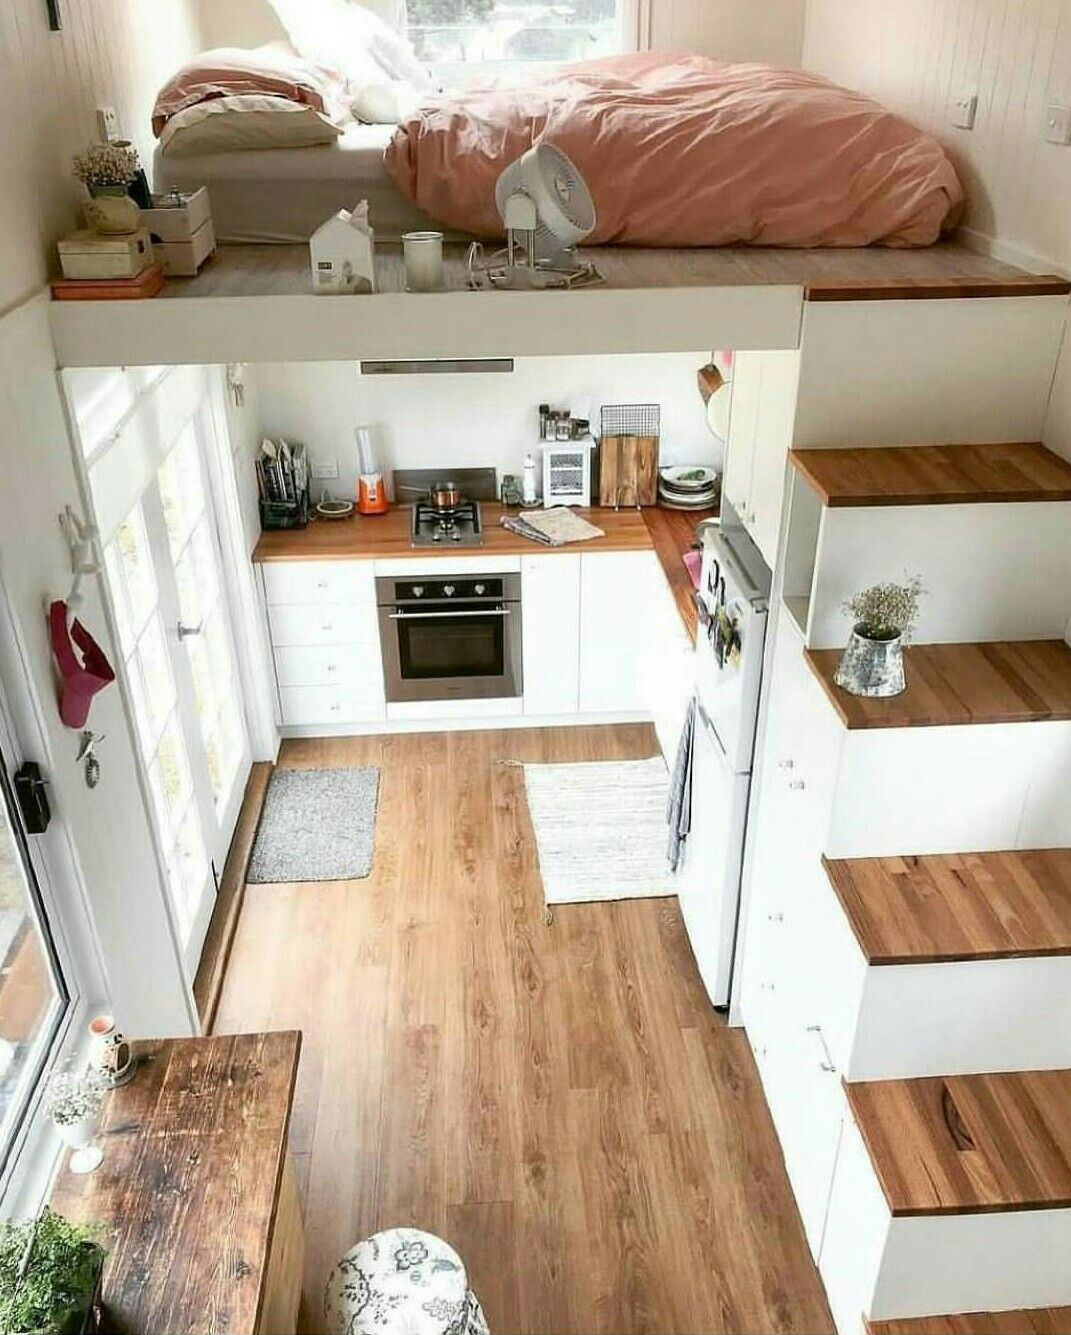 best tiny house interior yet tiny house pins best house interior Loft up top, bedroom in front. Tiny house decor!